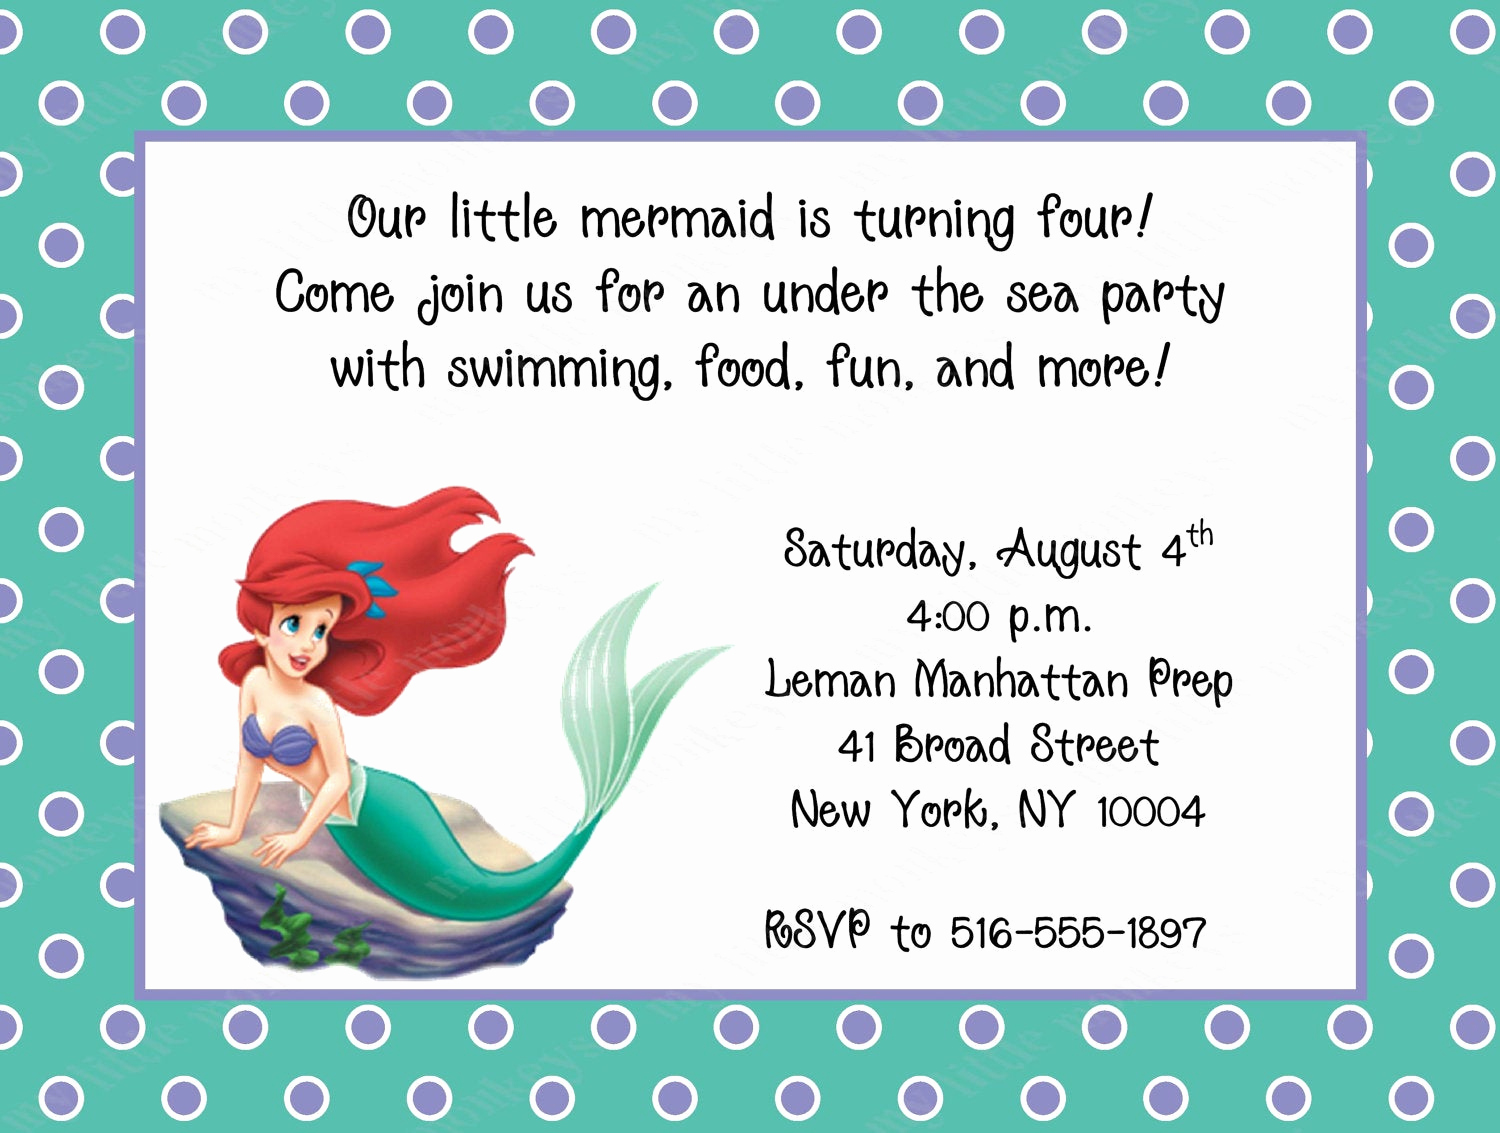 Little Mermaid Invitation Wording Lovely 10 Little Mermaid Birthday Invitations with Envelopes Free